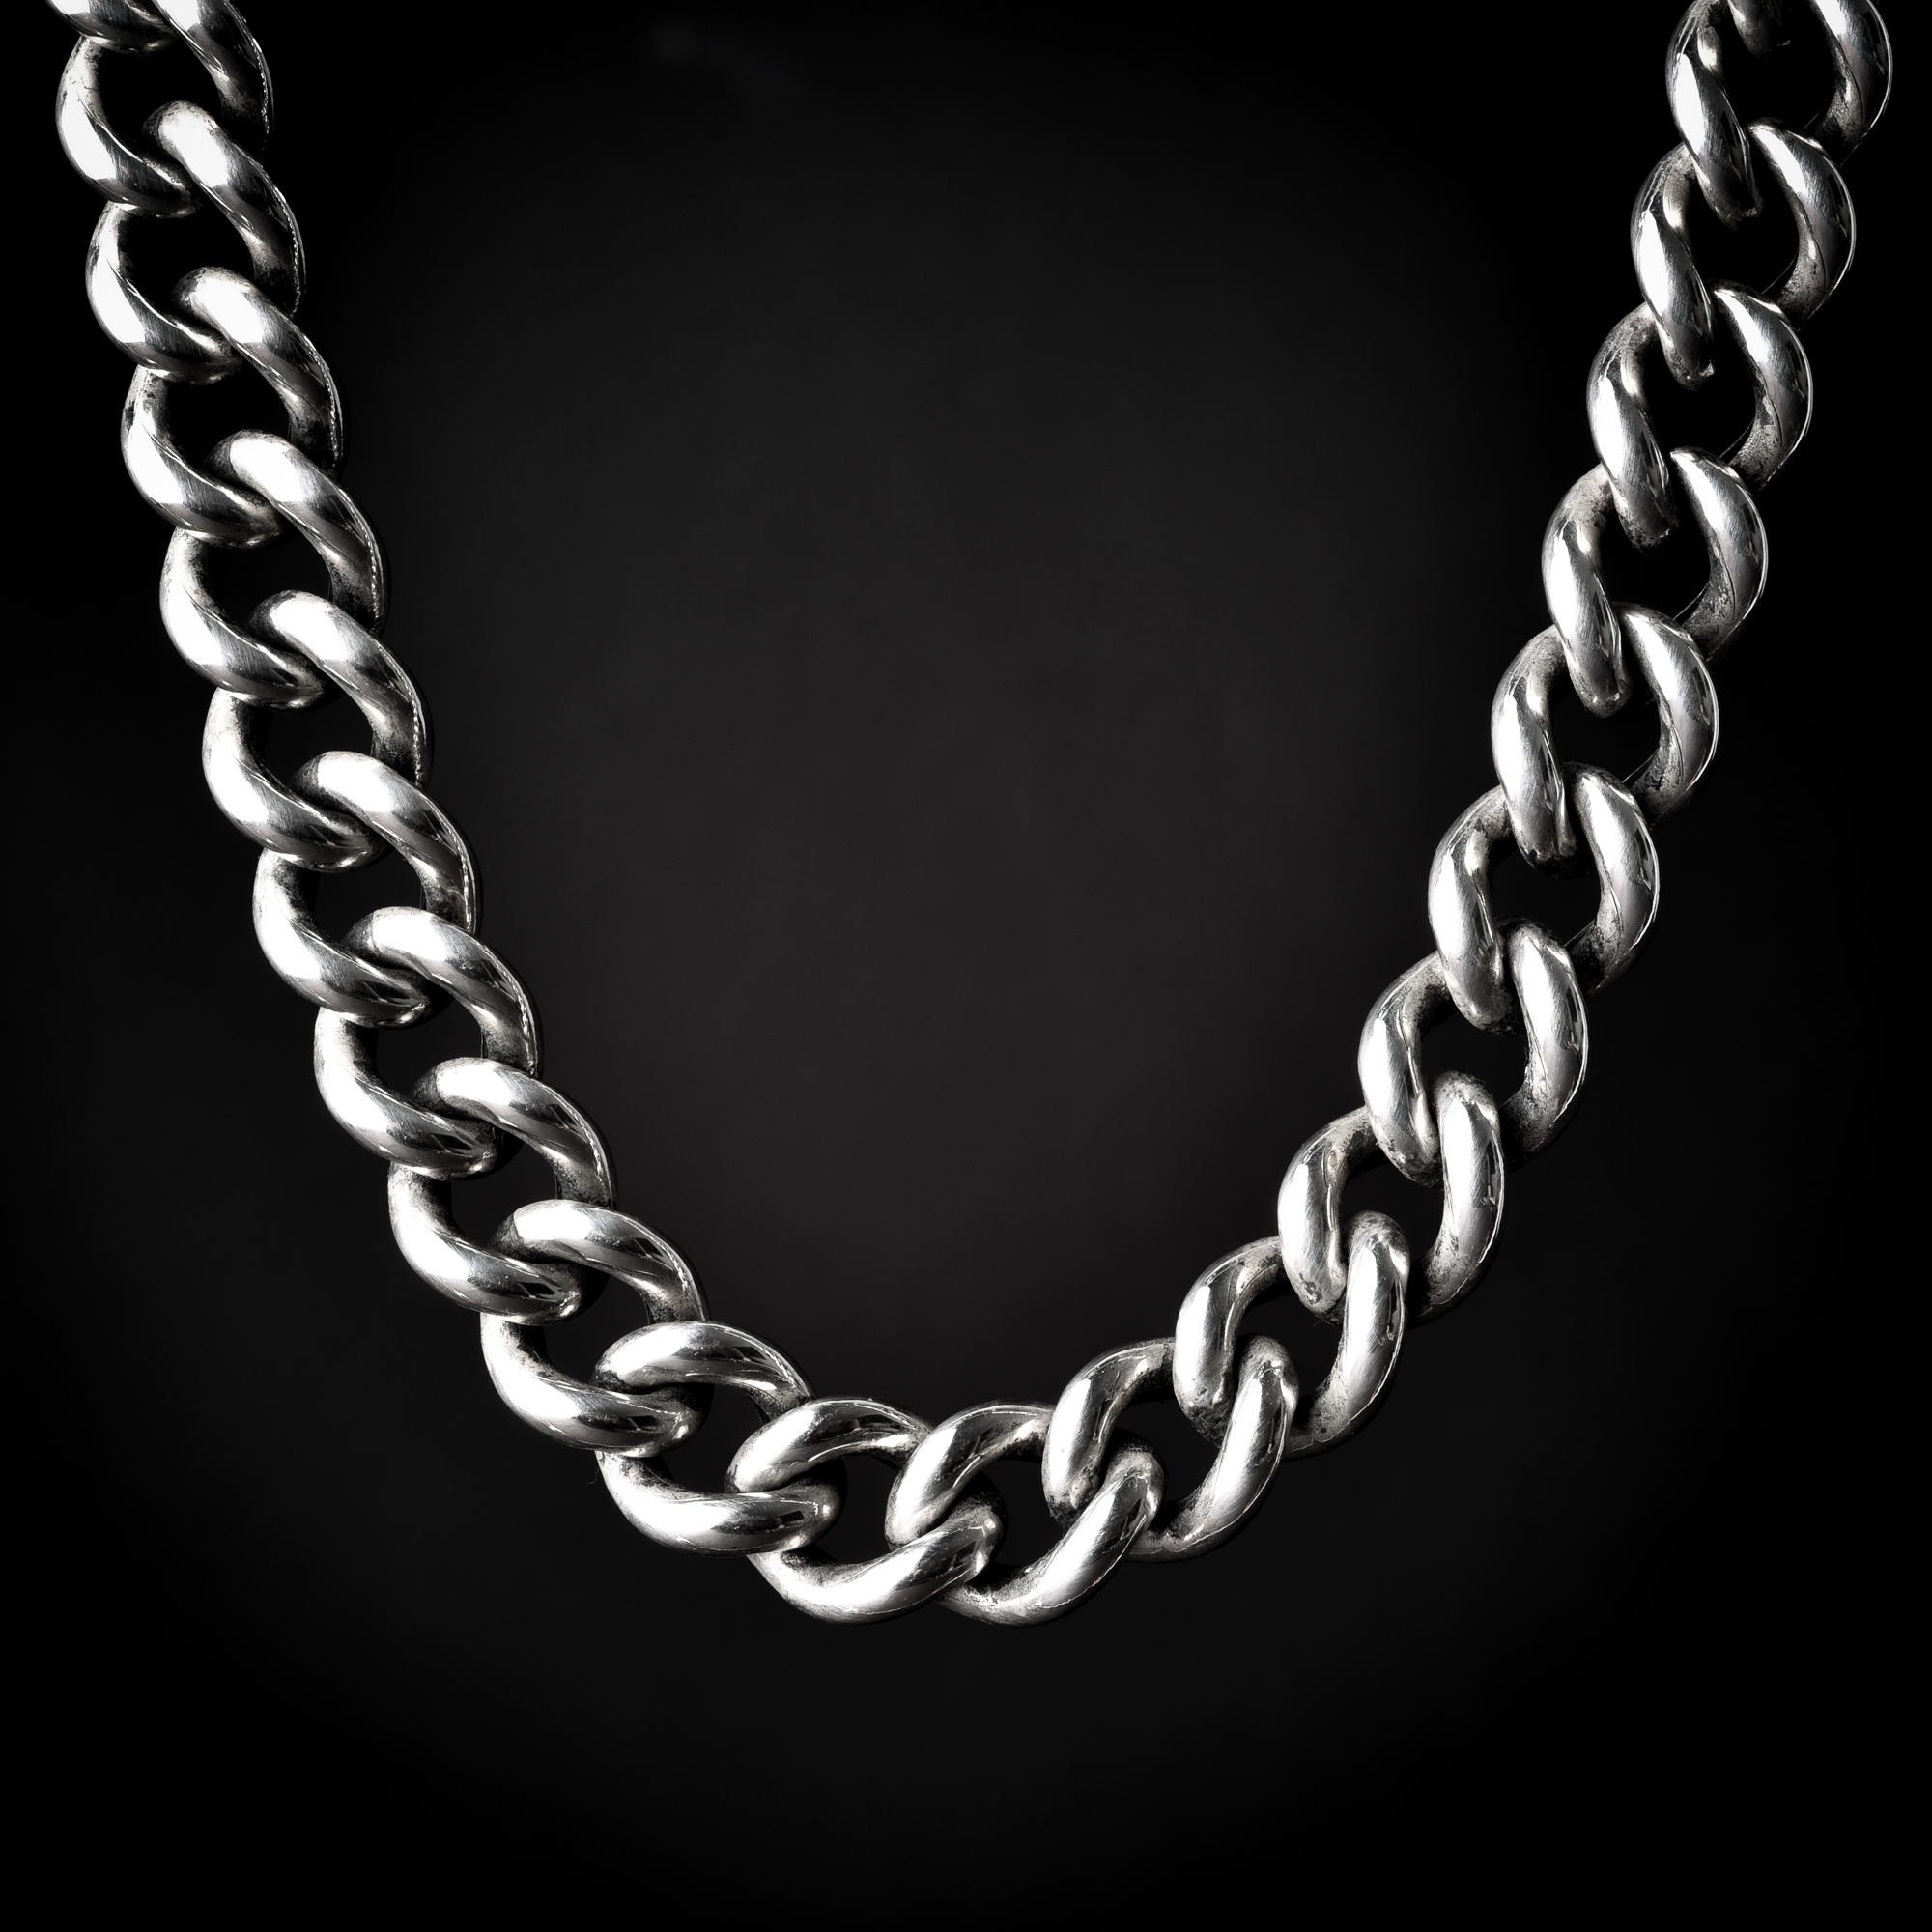 vintage p figaro chainlobster style chain clasp simple necklace with heavy silver cute minimalist large